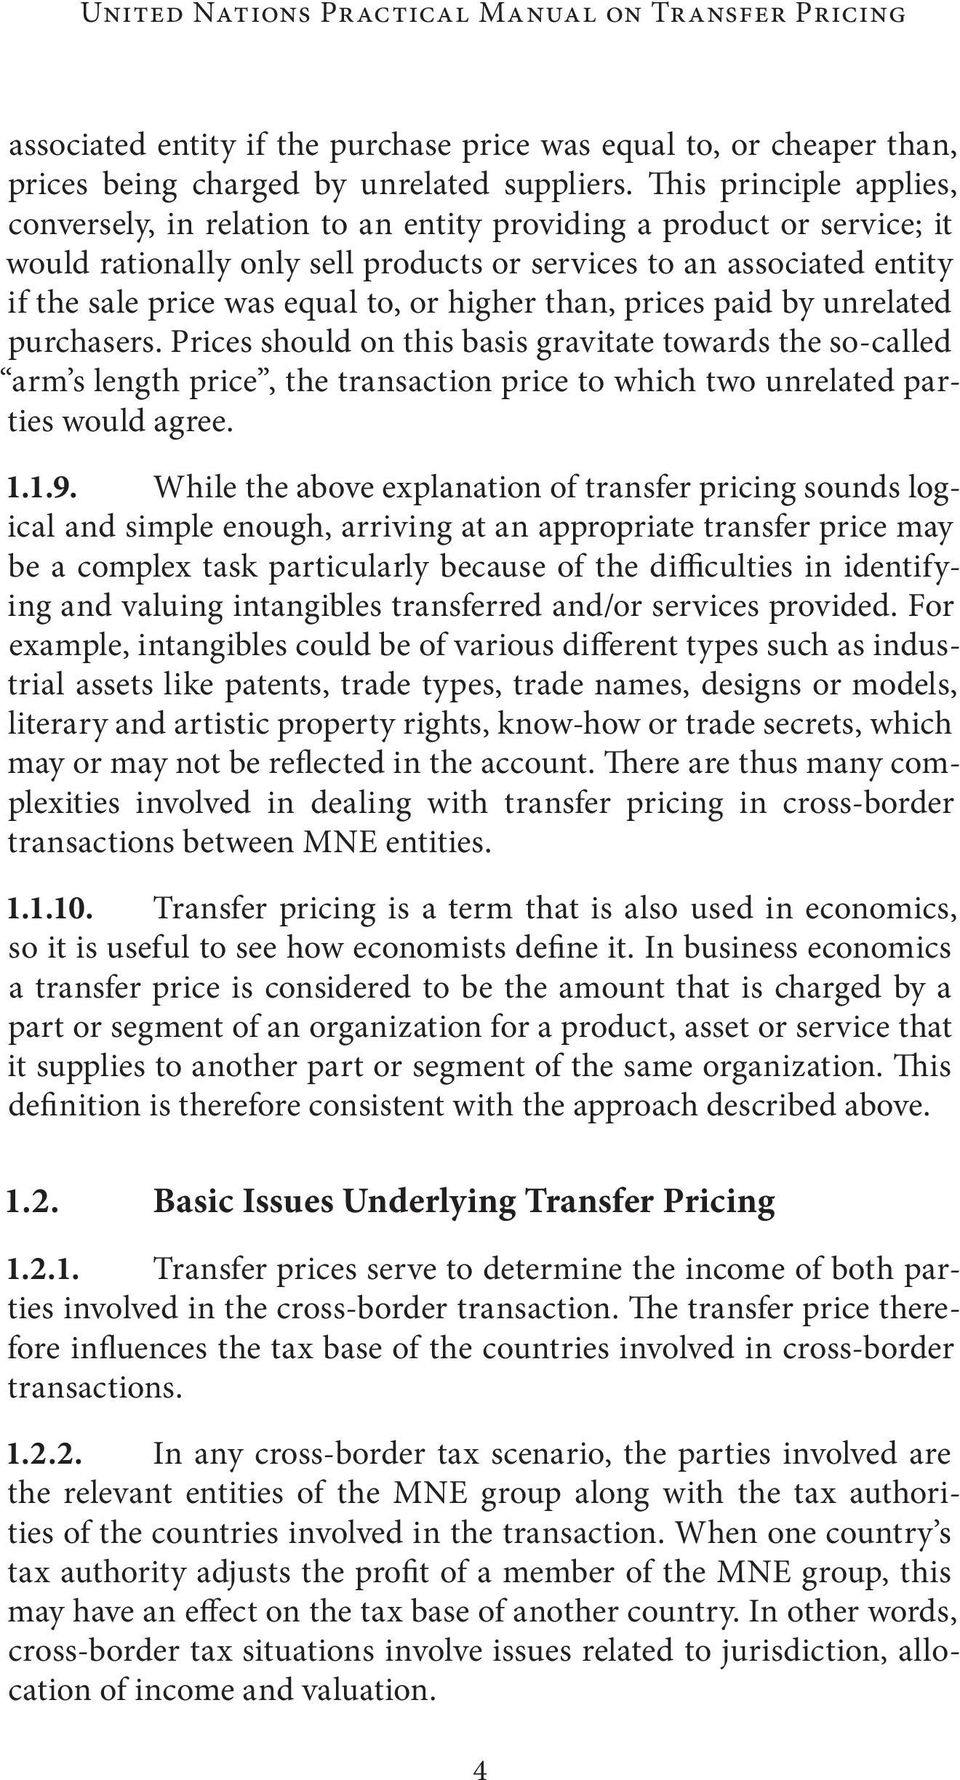 or higher than, prices paid by unrelated purchasers. Prices should on this basis gravitate towards the so-called arm s length price, the transaction price to which two unrelated parties would agree.